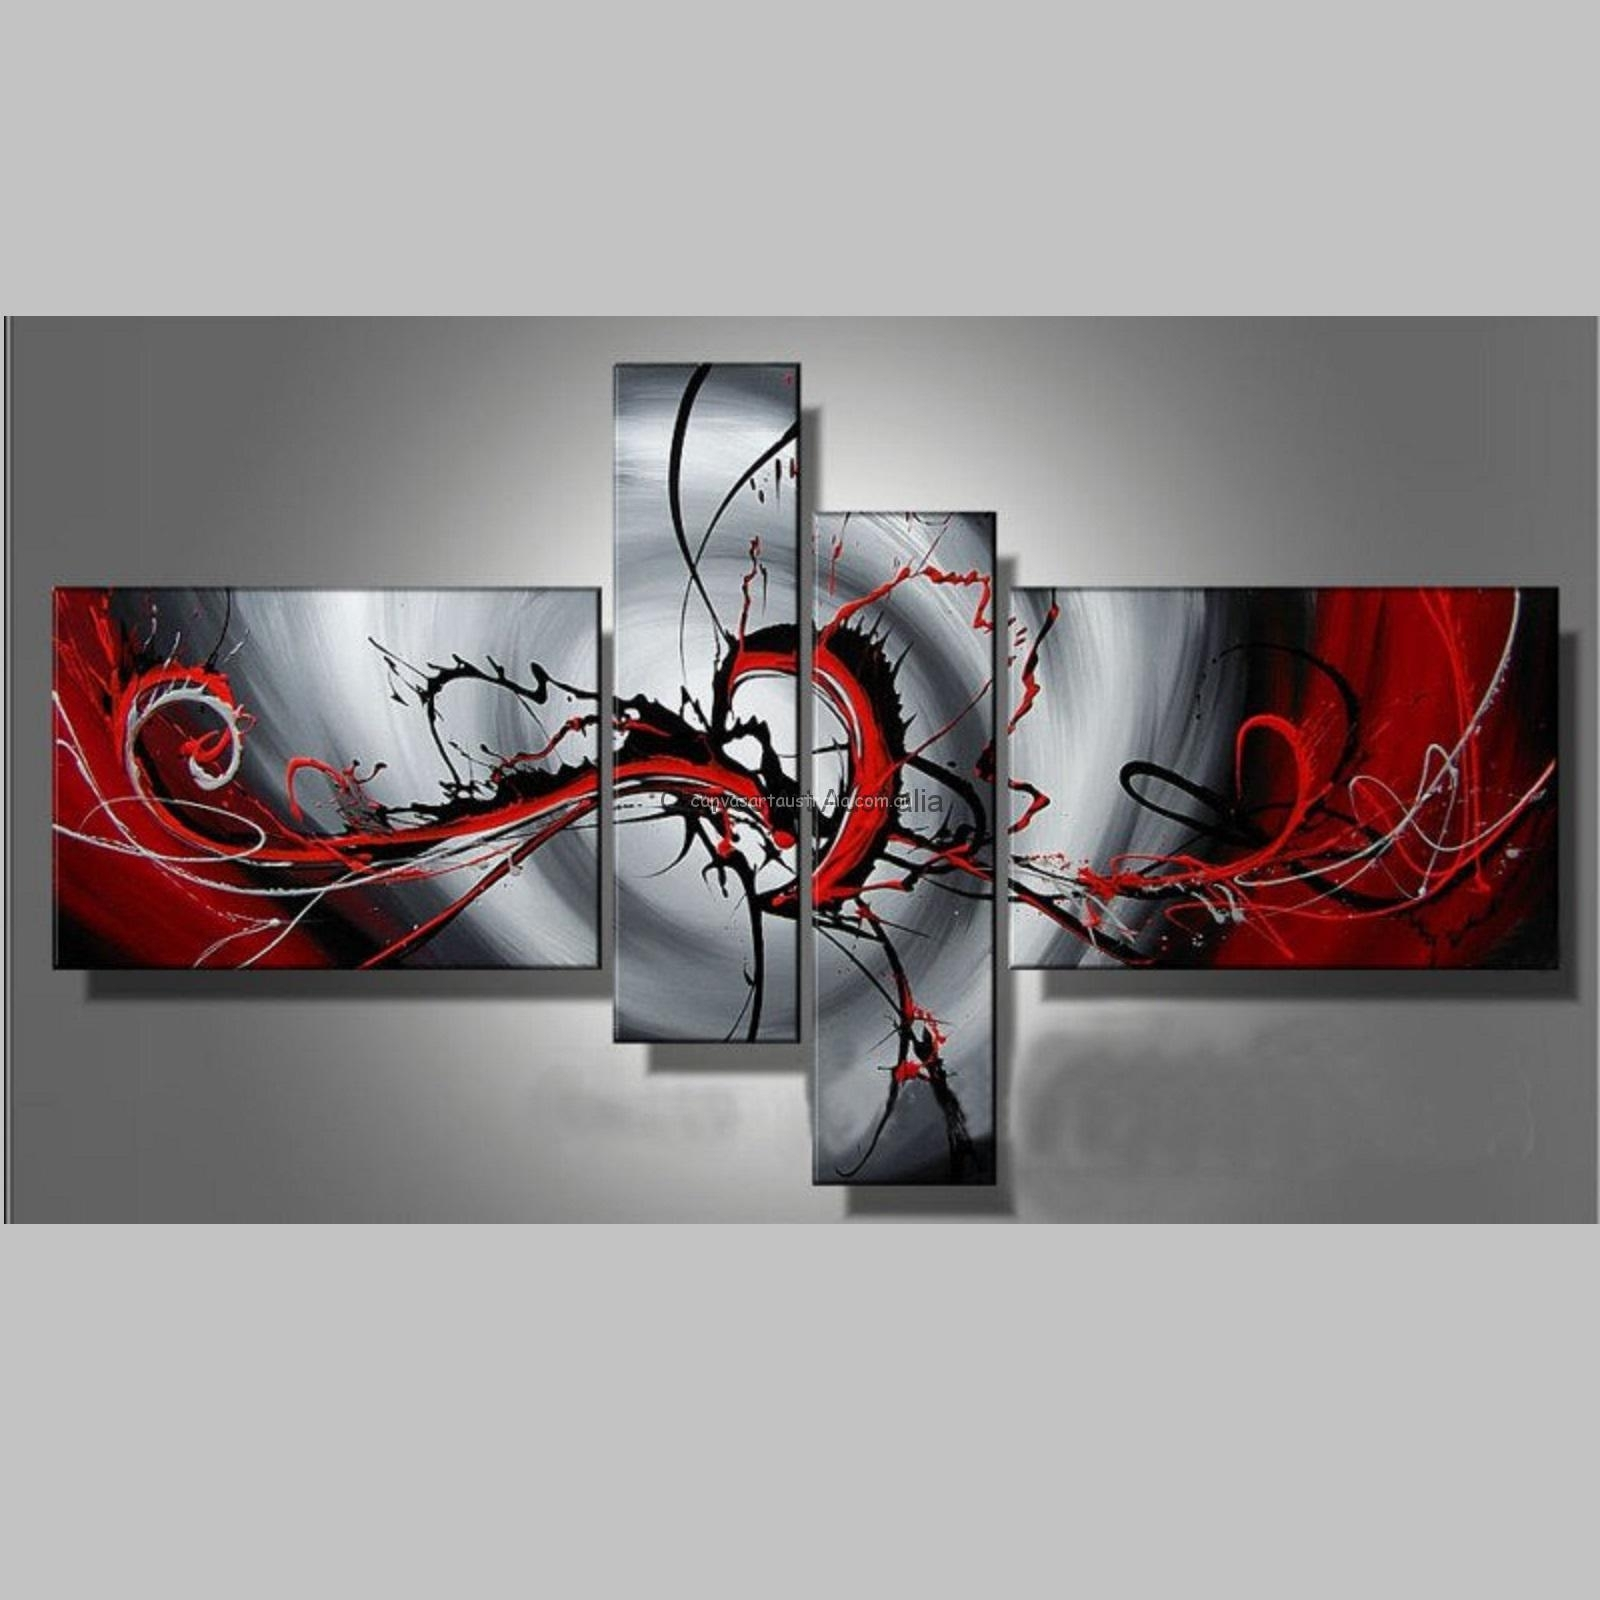 4 Piece Set Colour Of Passion Modern Abstract – Canvas Art Australia Inside Current Abstract Wall Art Australia (View 18 of 20)